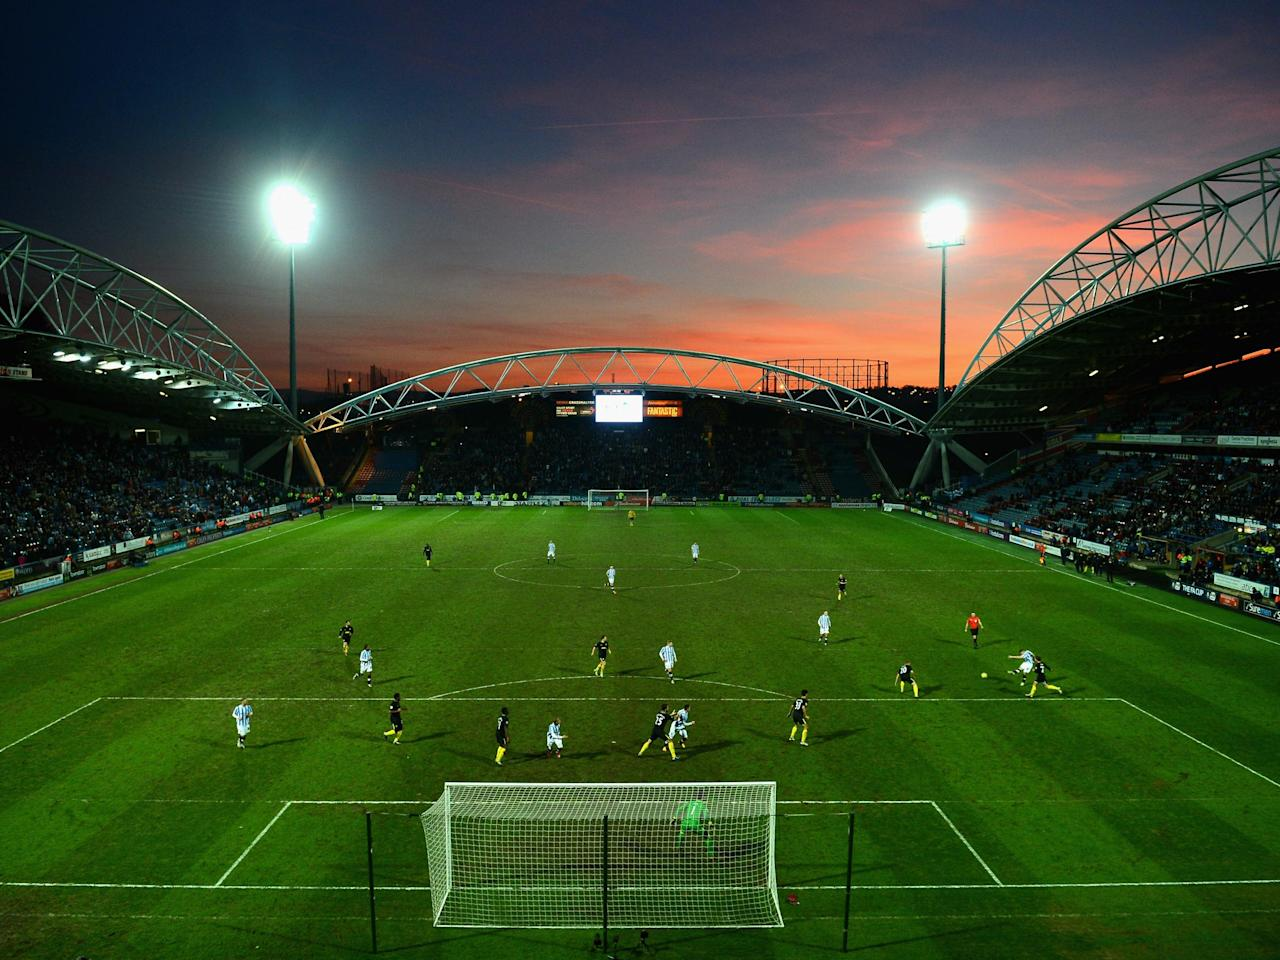 Newly-promoted Huddersfield Town facing wrongful dismissal claim after sacking their goalkeeping coach